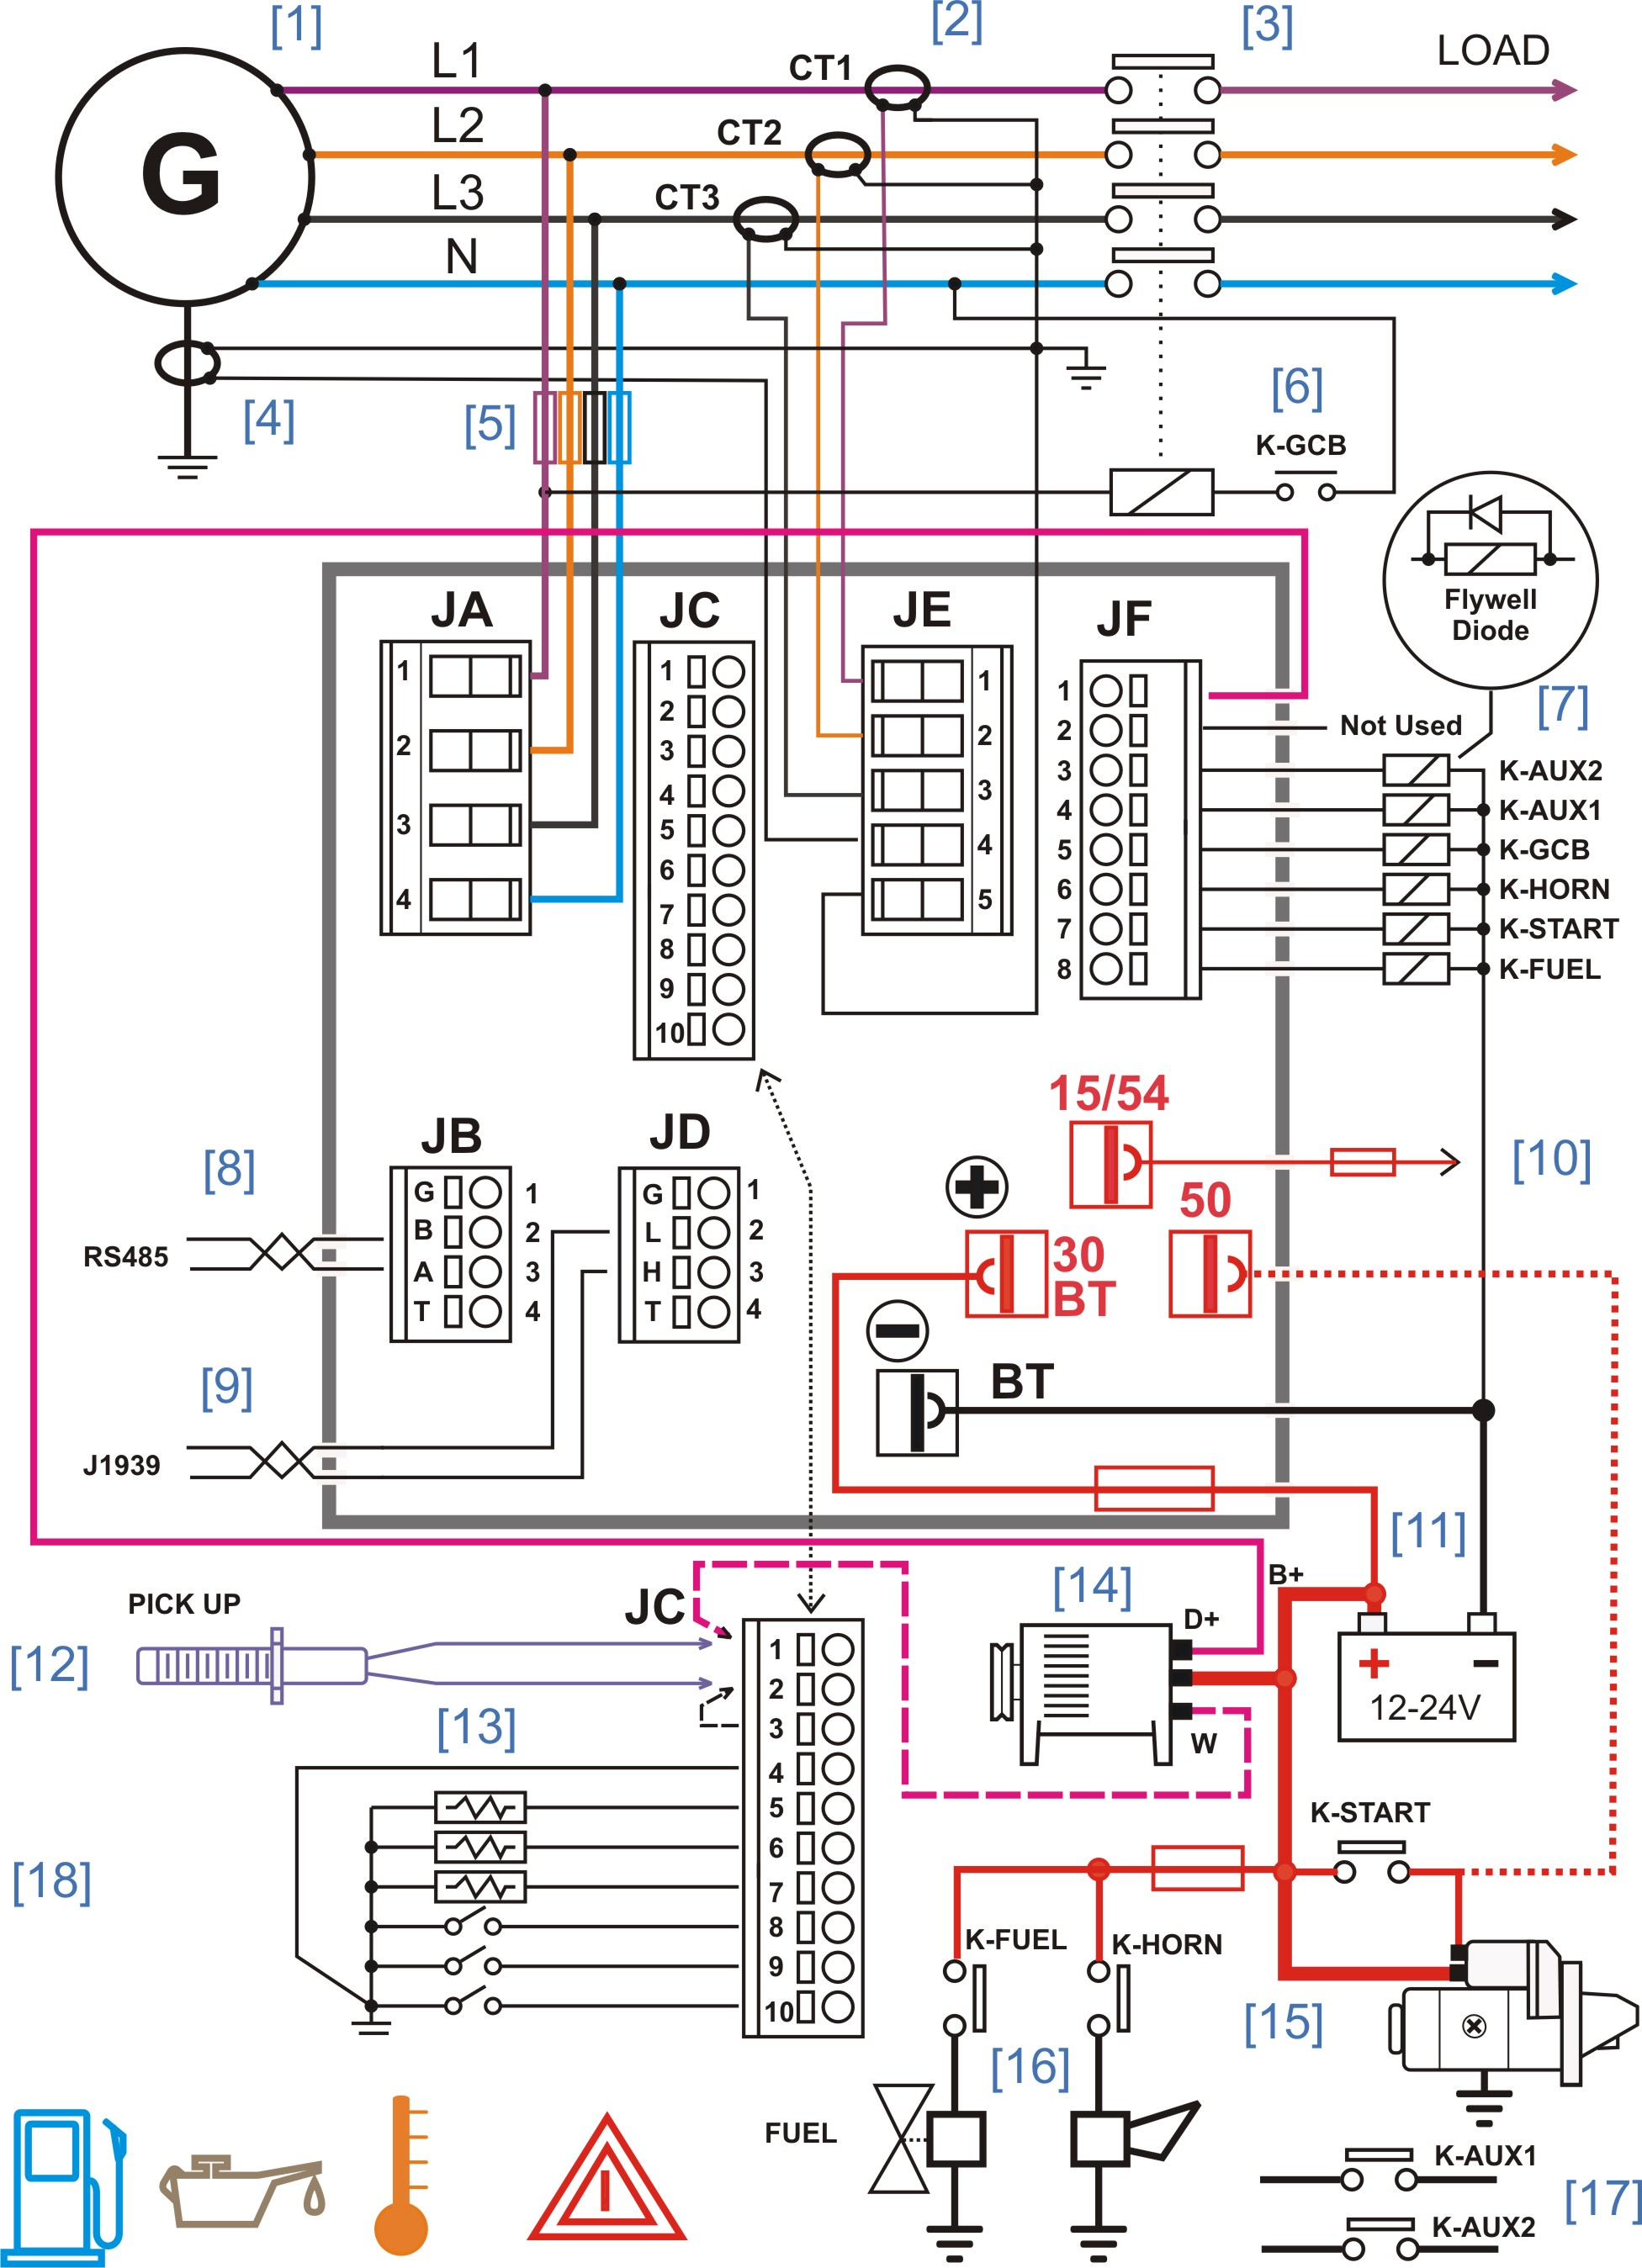 Diesel Generator Control Panel Wiring Diagram diesel generator control panel wiring diagram genset controller electrical panel board wiring diagram pdf at webbmarketing.co